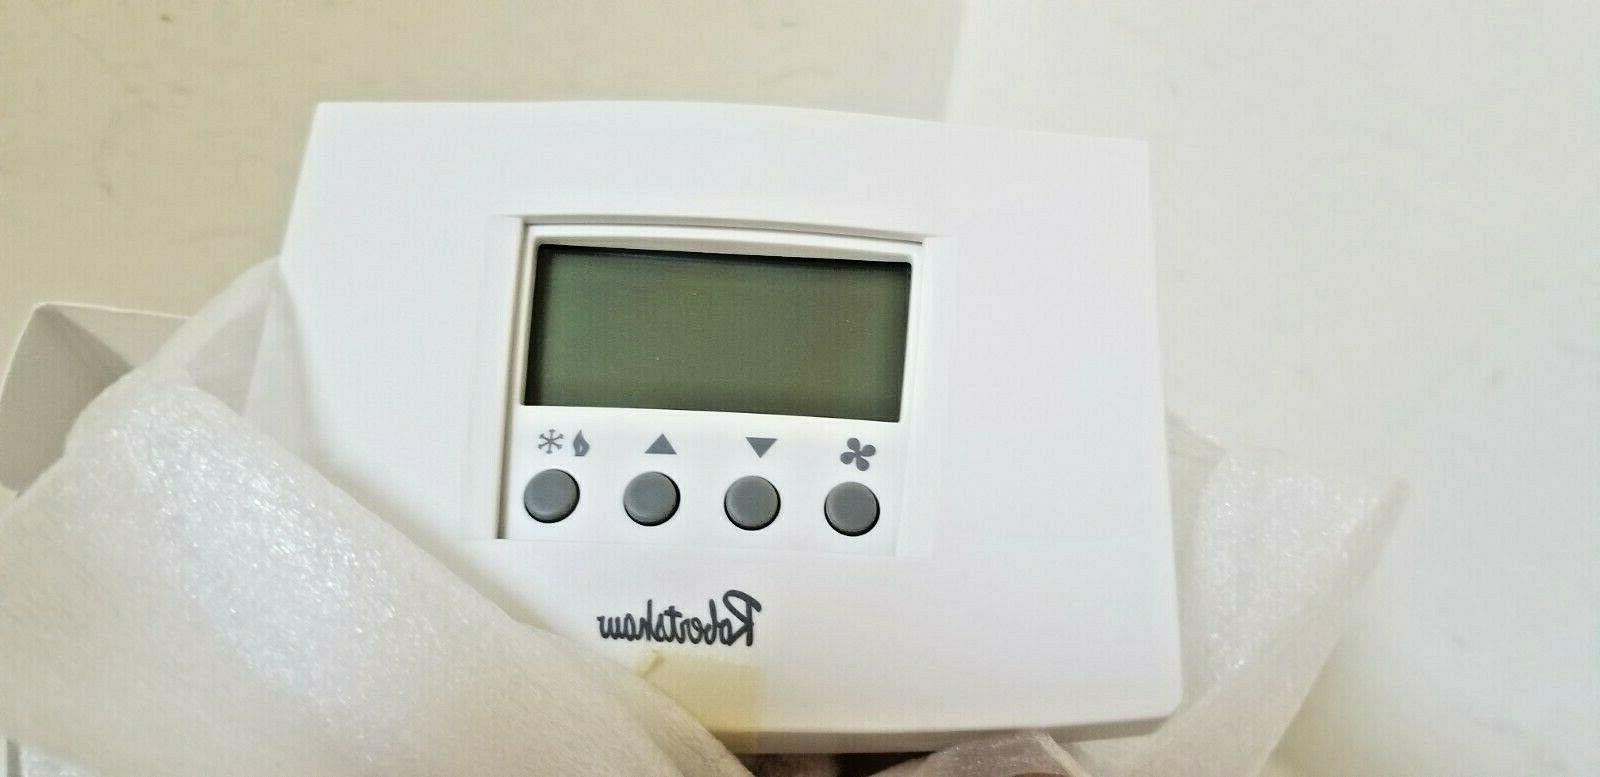 ROBERTSHAW Cool Digital Day Programmable Thermostat Pump